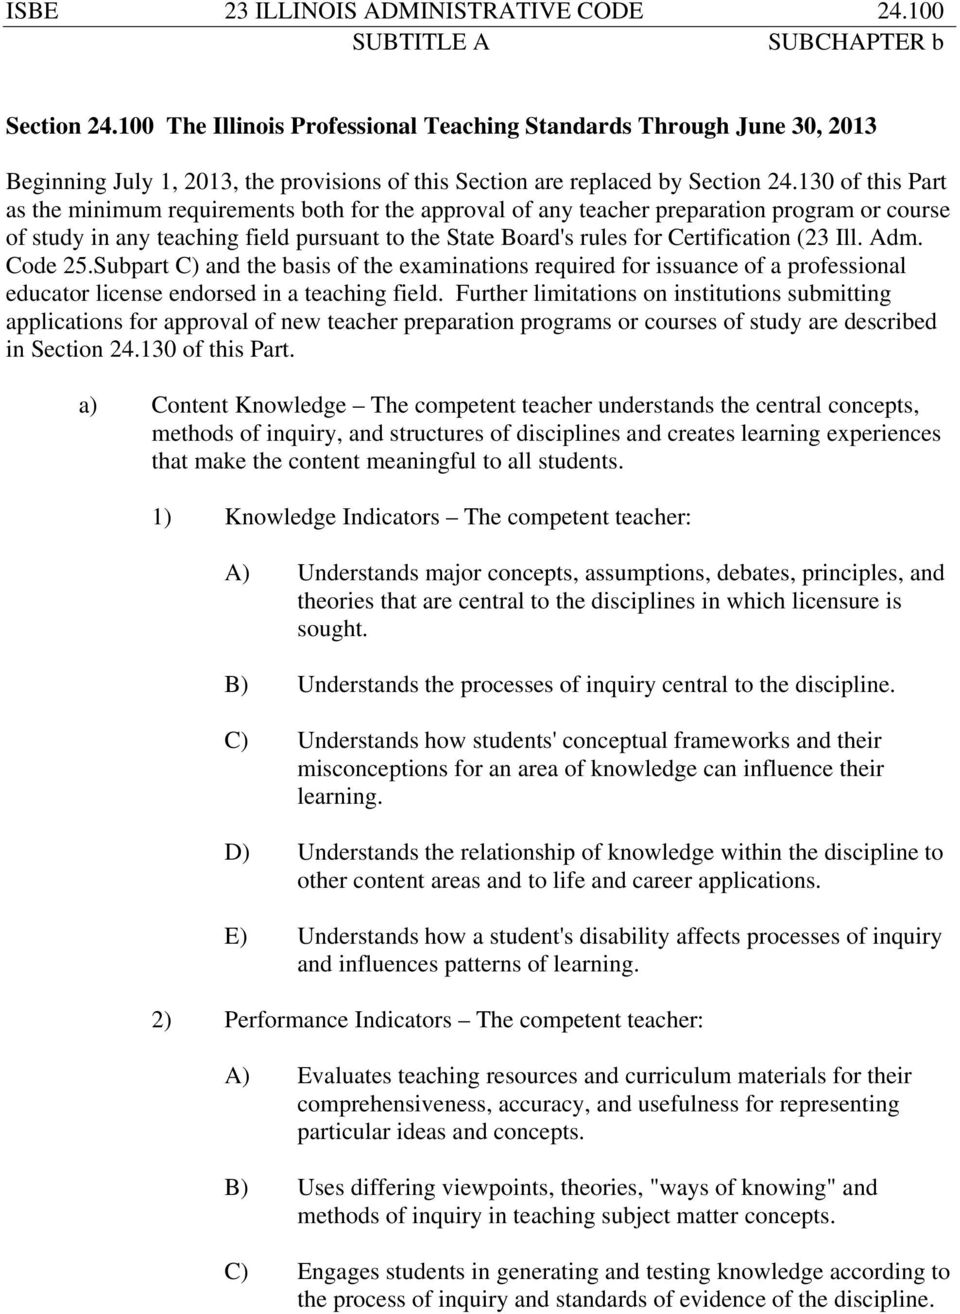 130 of this Part as the minimum requirements both for the approval of any teacher preparation program or course of study in any teaching field pursuant to the State Board's rules for Certification